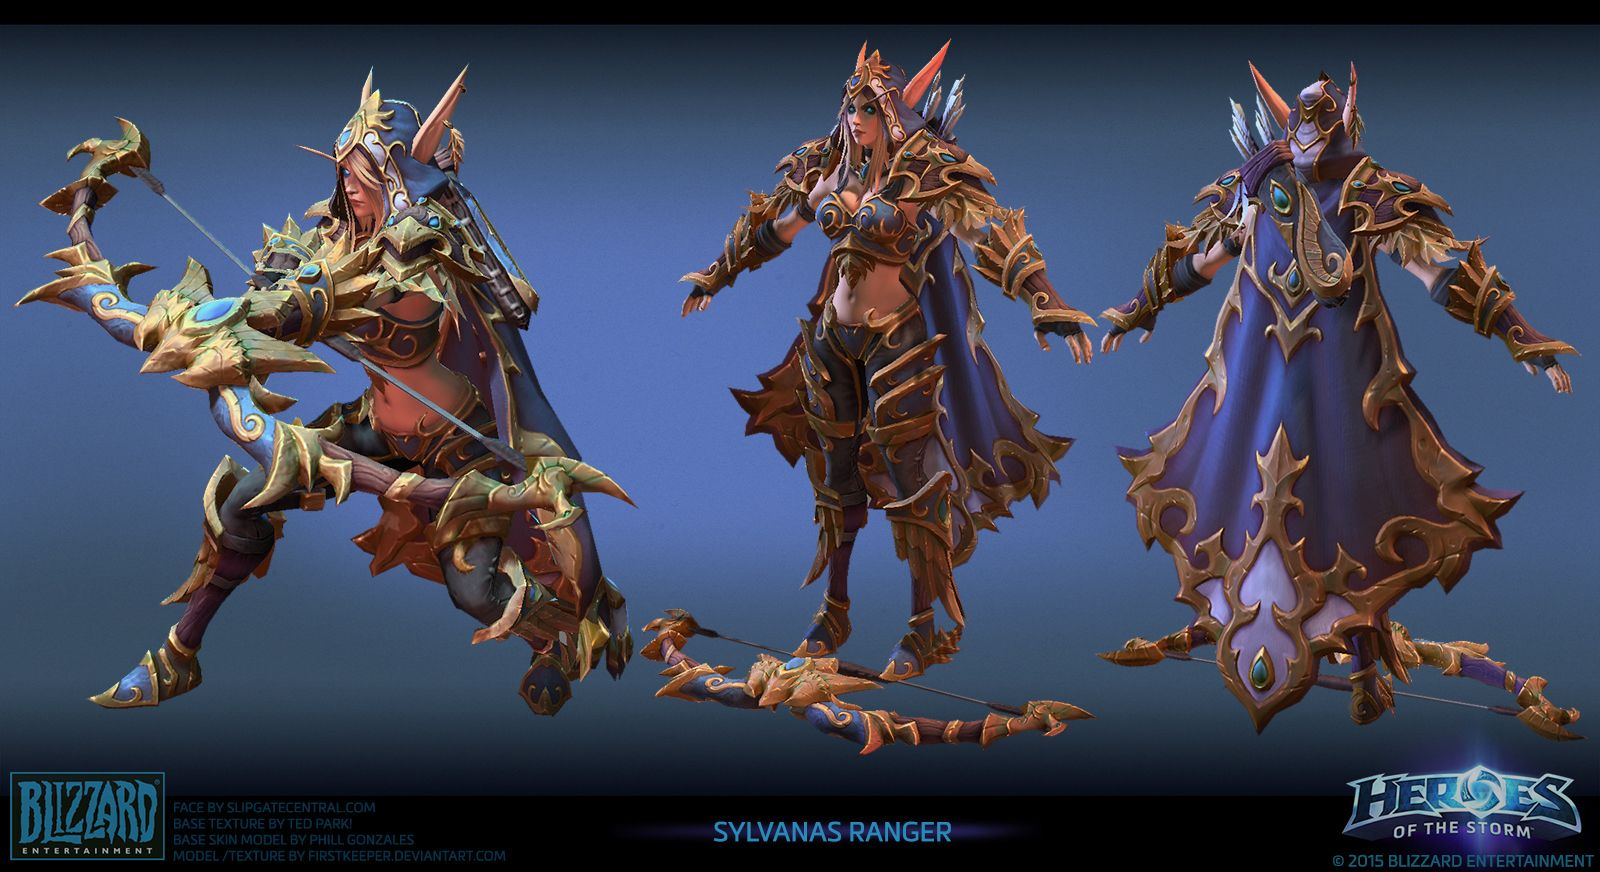 Sylvanas Ranger Heroes Of The Storm Heroes Of The Storm Hero Low Poly Art A node module for hots (heroes of the storm) logs. sylvanas ranger heroes of the storm